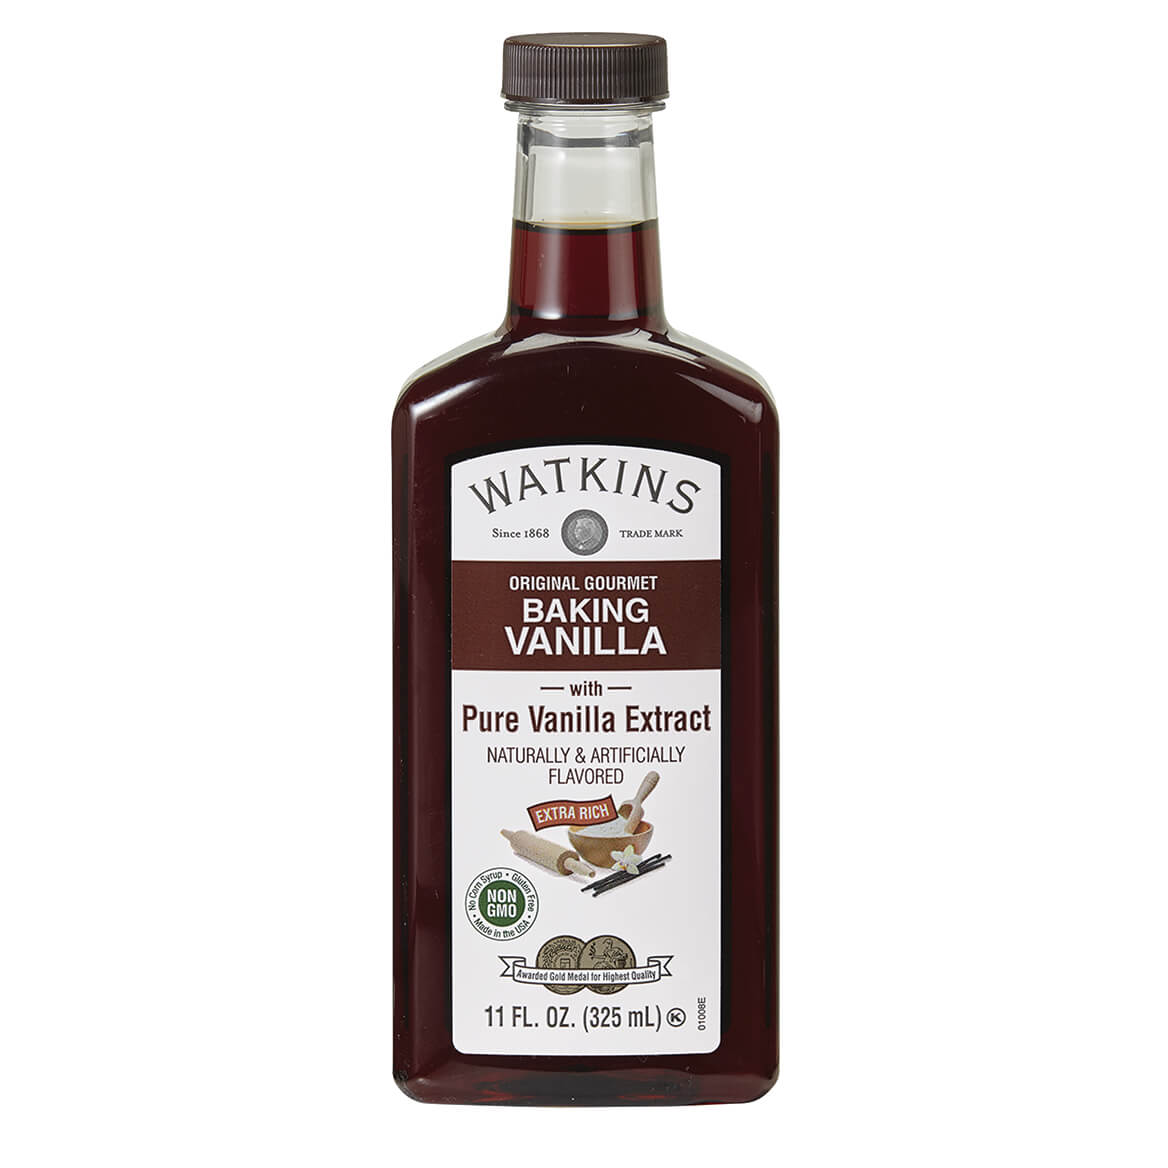 Watkins Original Baking Vanilla Extract, 11 oz.-364267